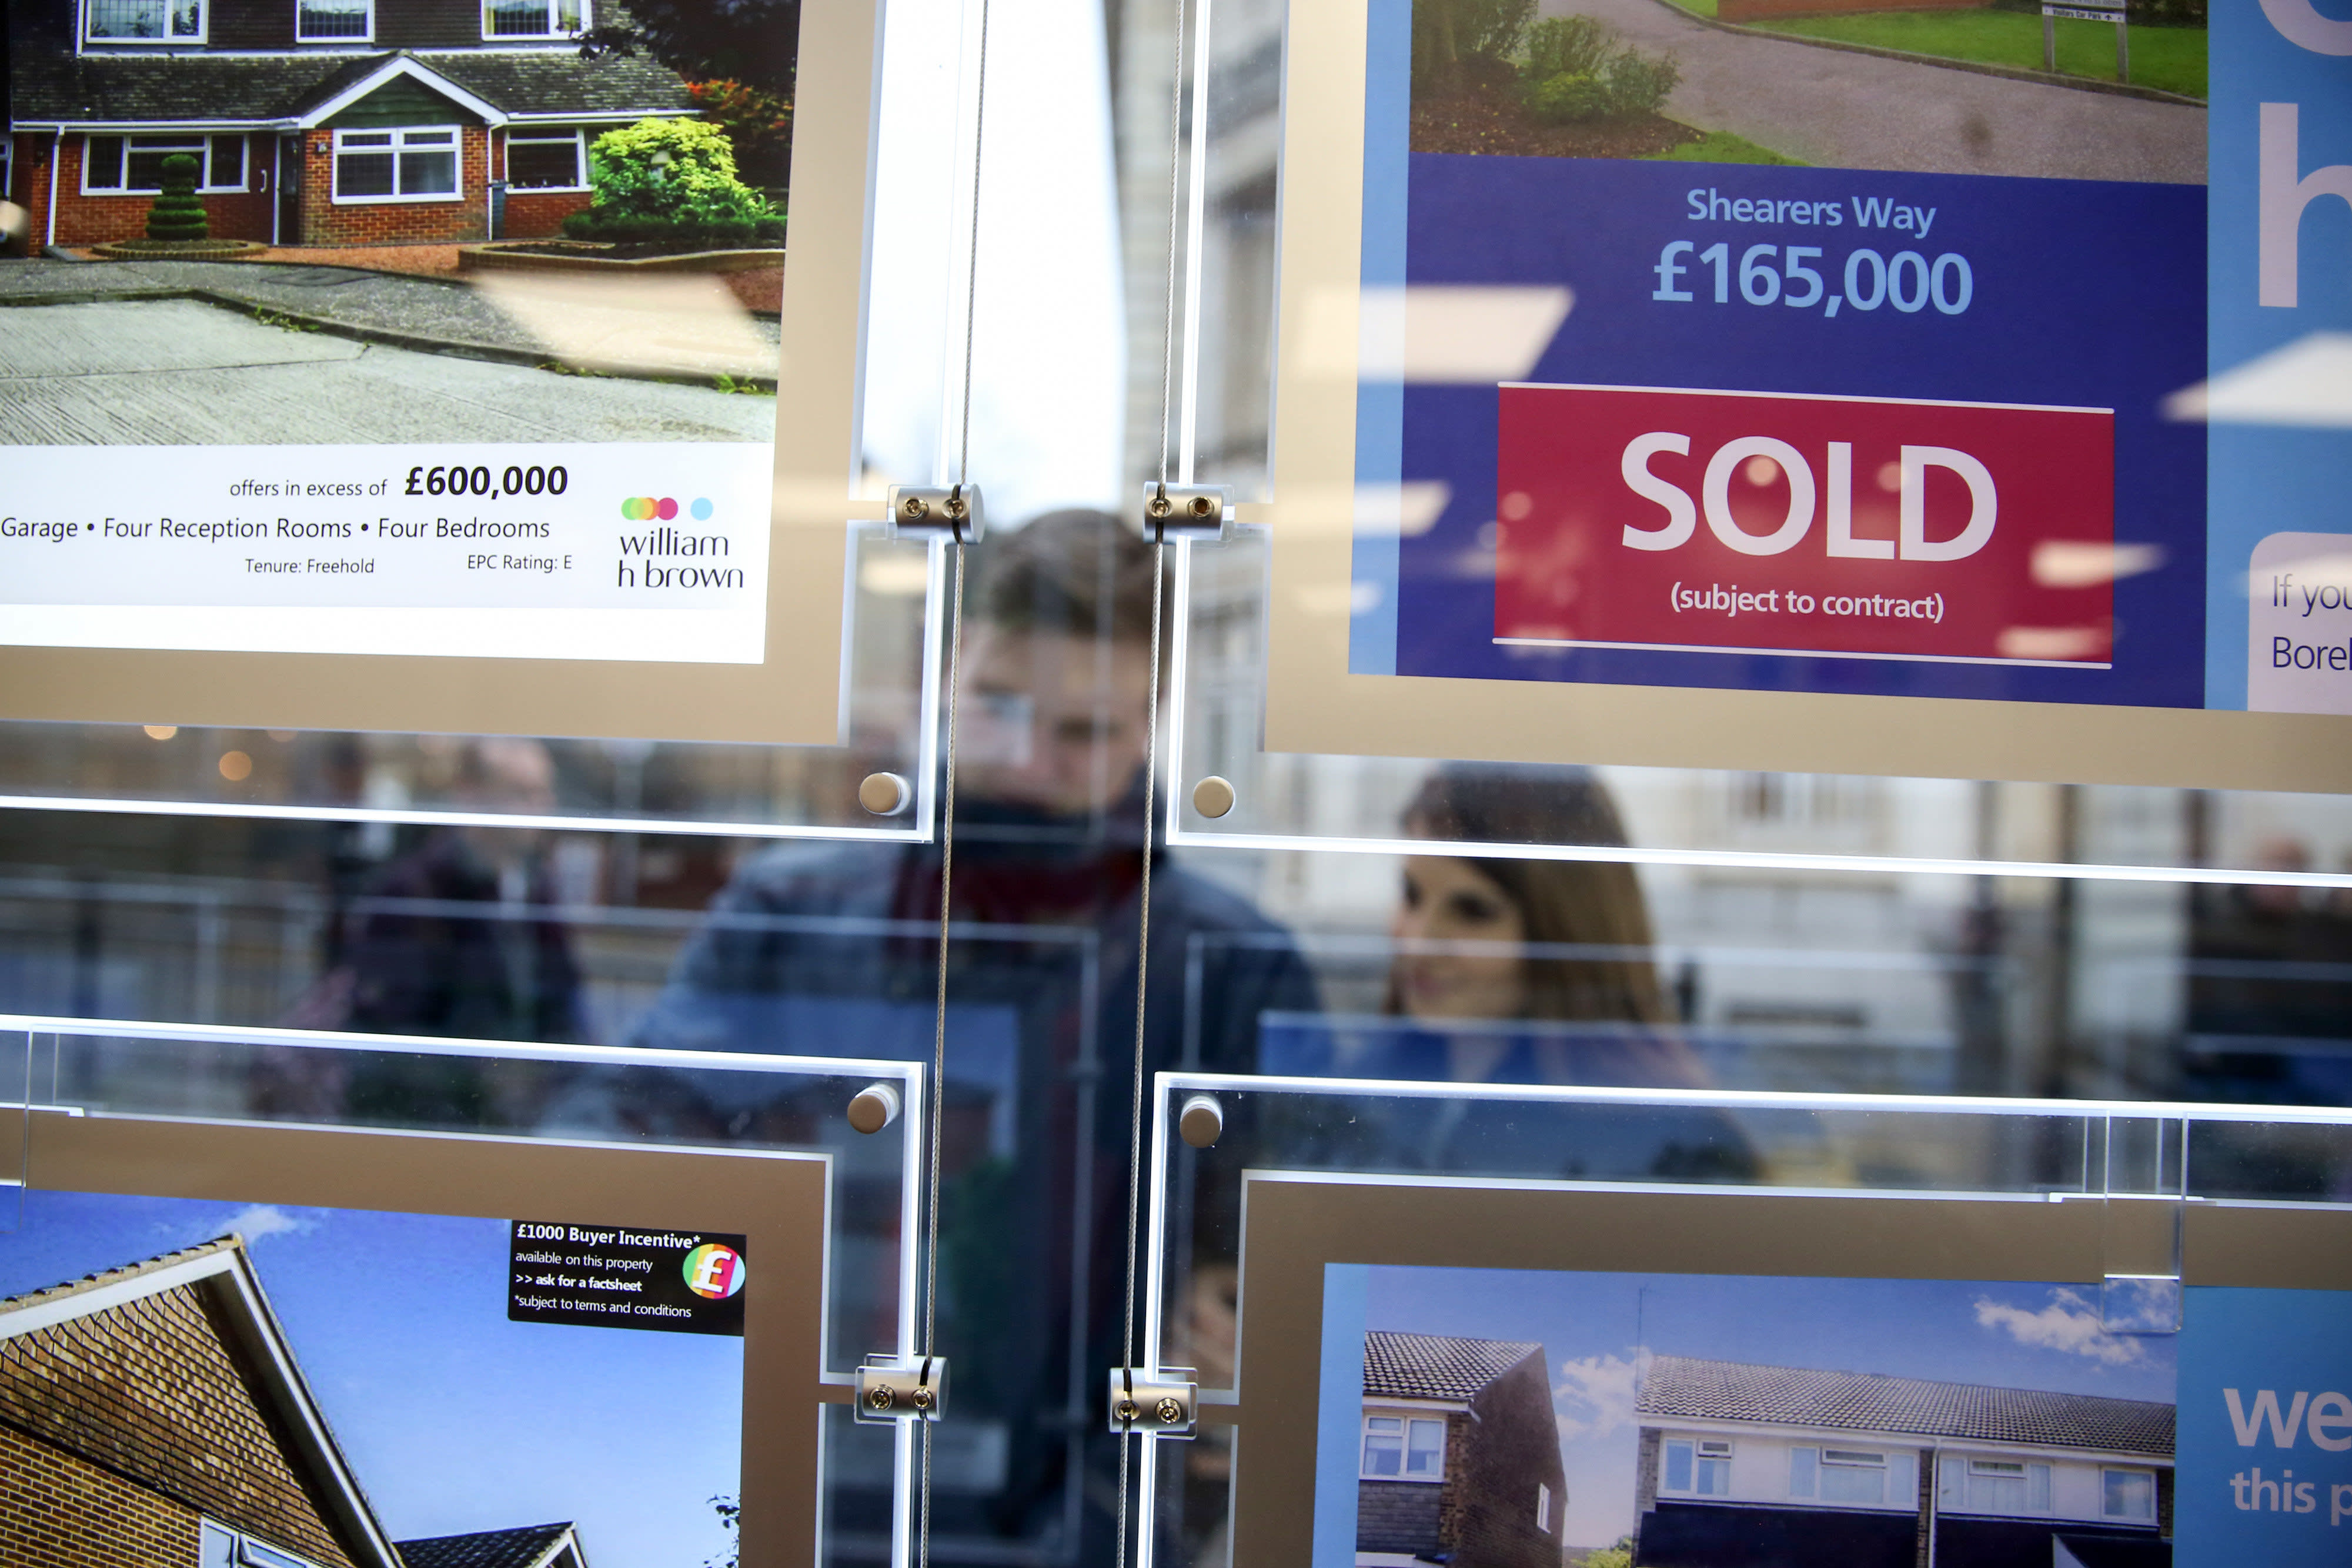 Property listings fall by 25%